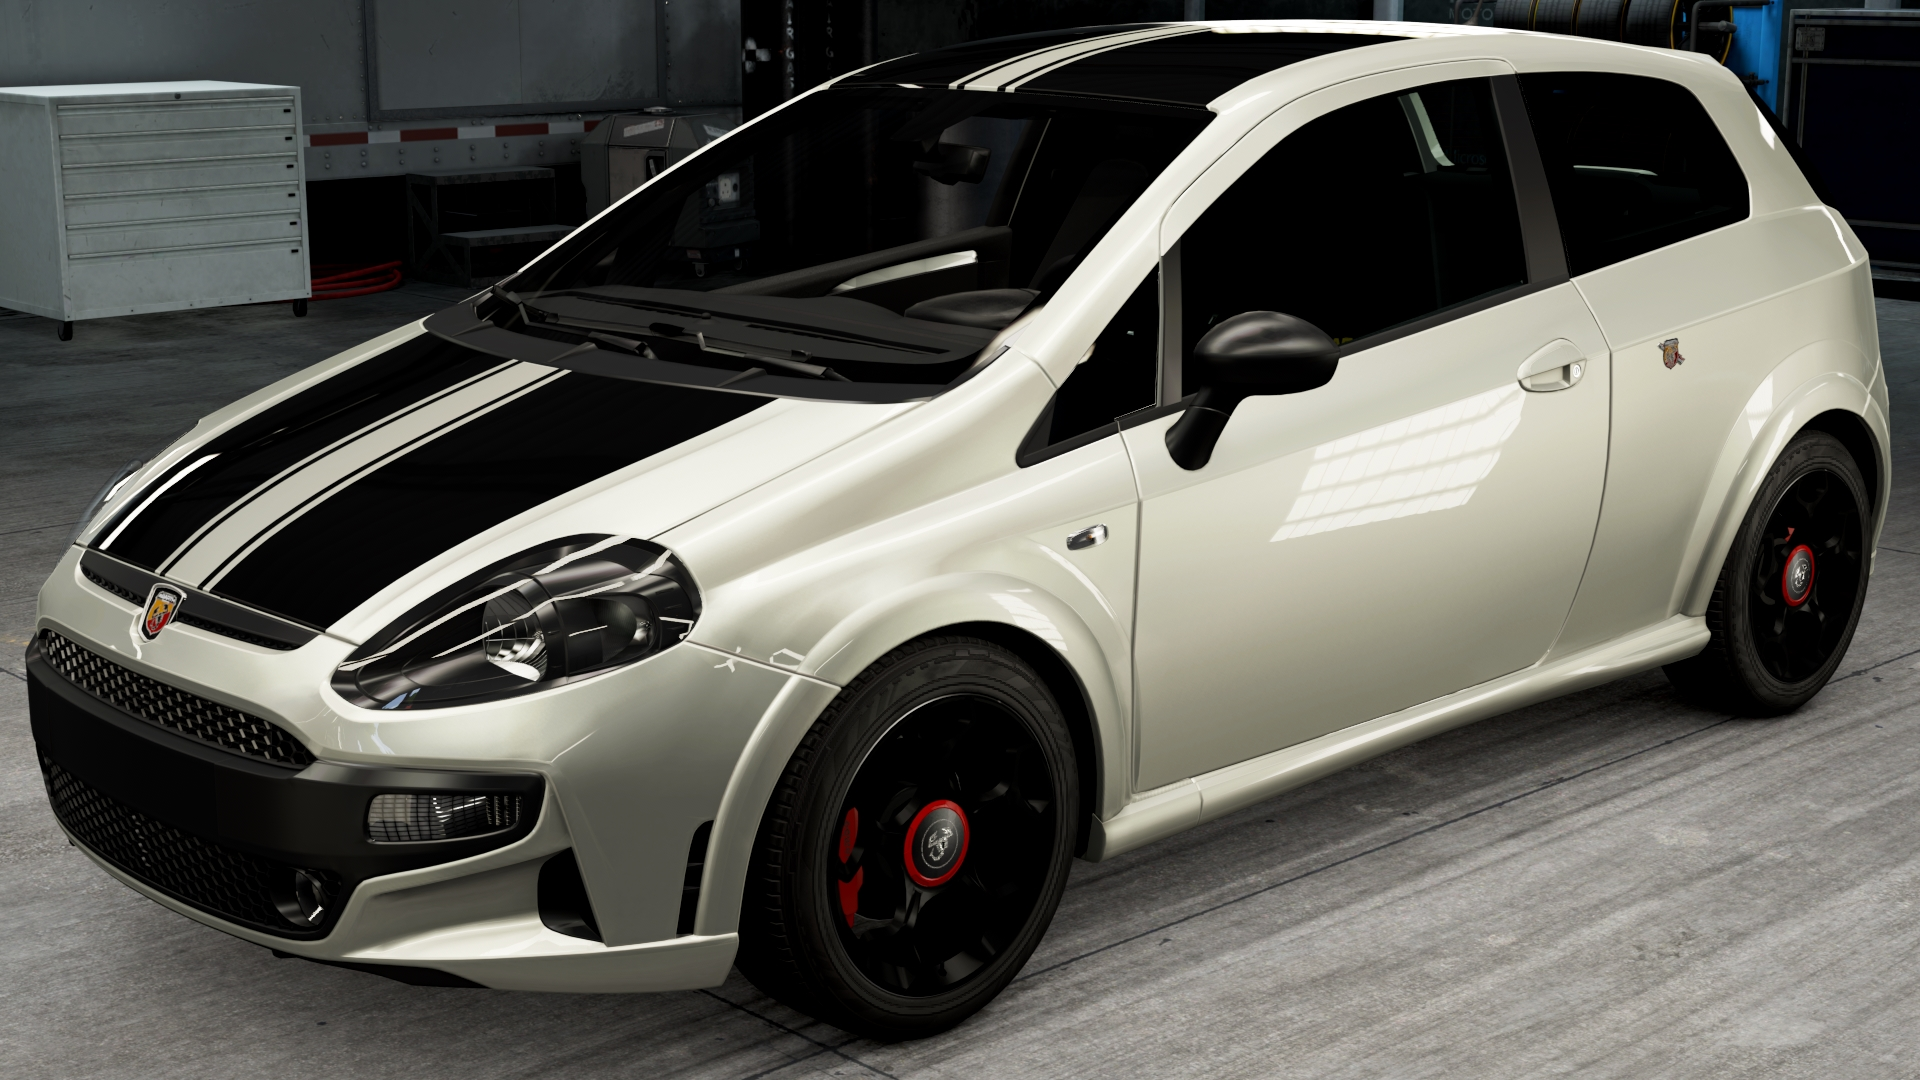 Abarth Punto SuperSport | Forza Motorsport Wiki | FANDOM powered by